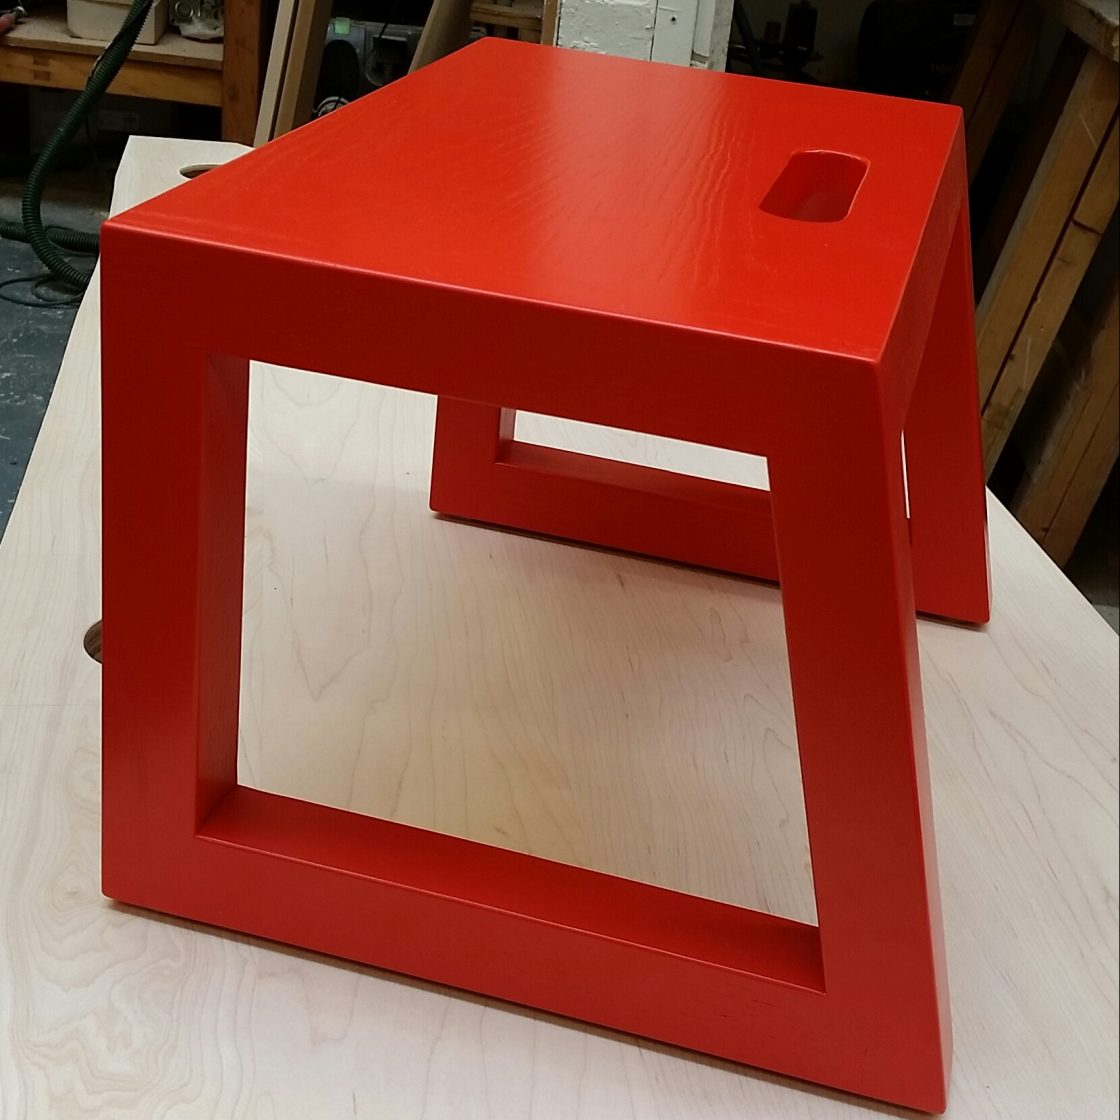 Vermillion stool